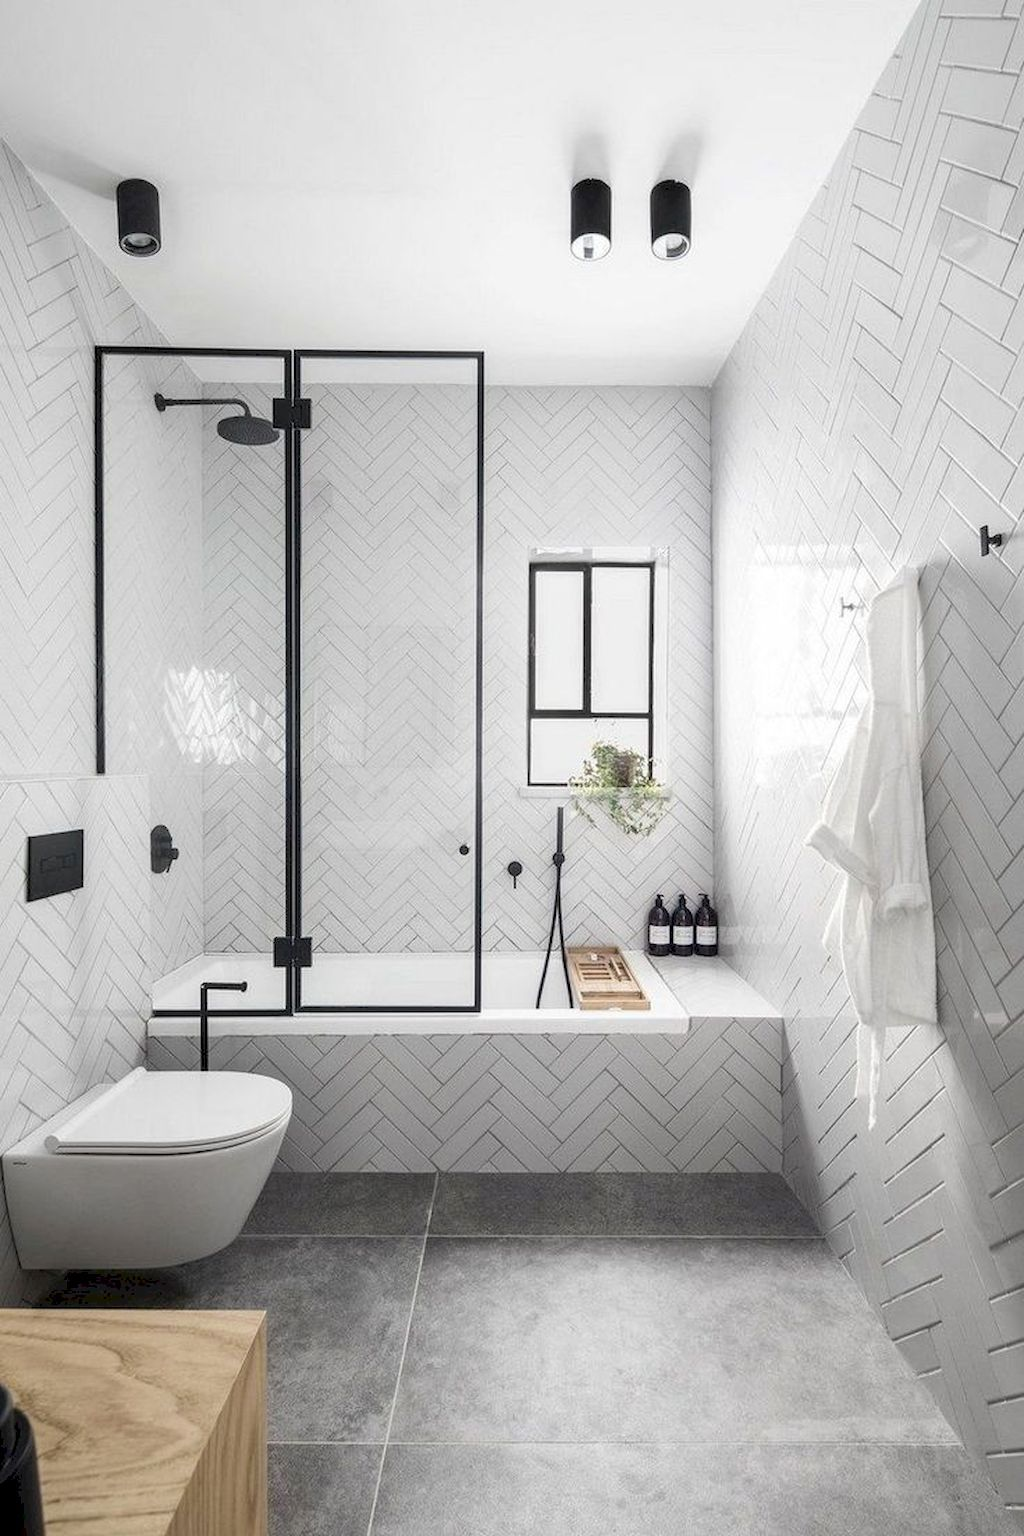 Magnificent 121 Simple Cool Creative Wall Decorating Ideas That Are Easy To Apply In Your Home Bathroom Interior Design Modern Bathroom Design Modern Bathroom